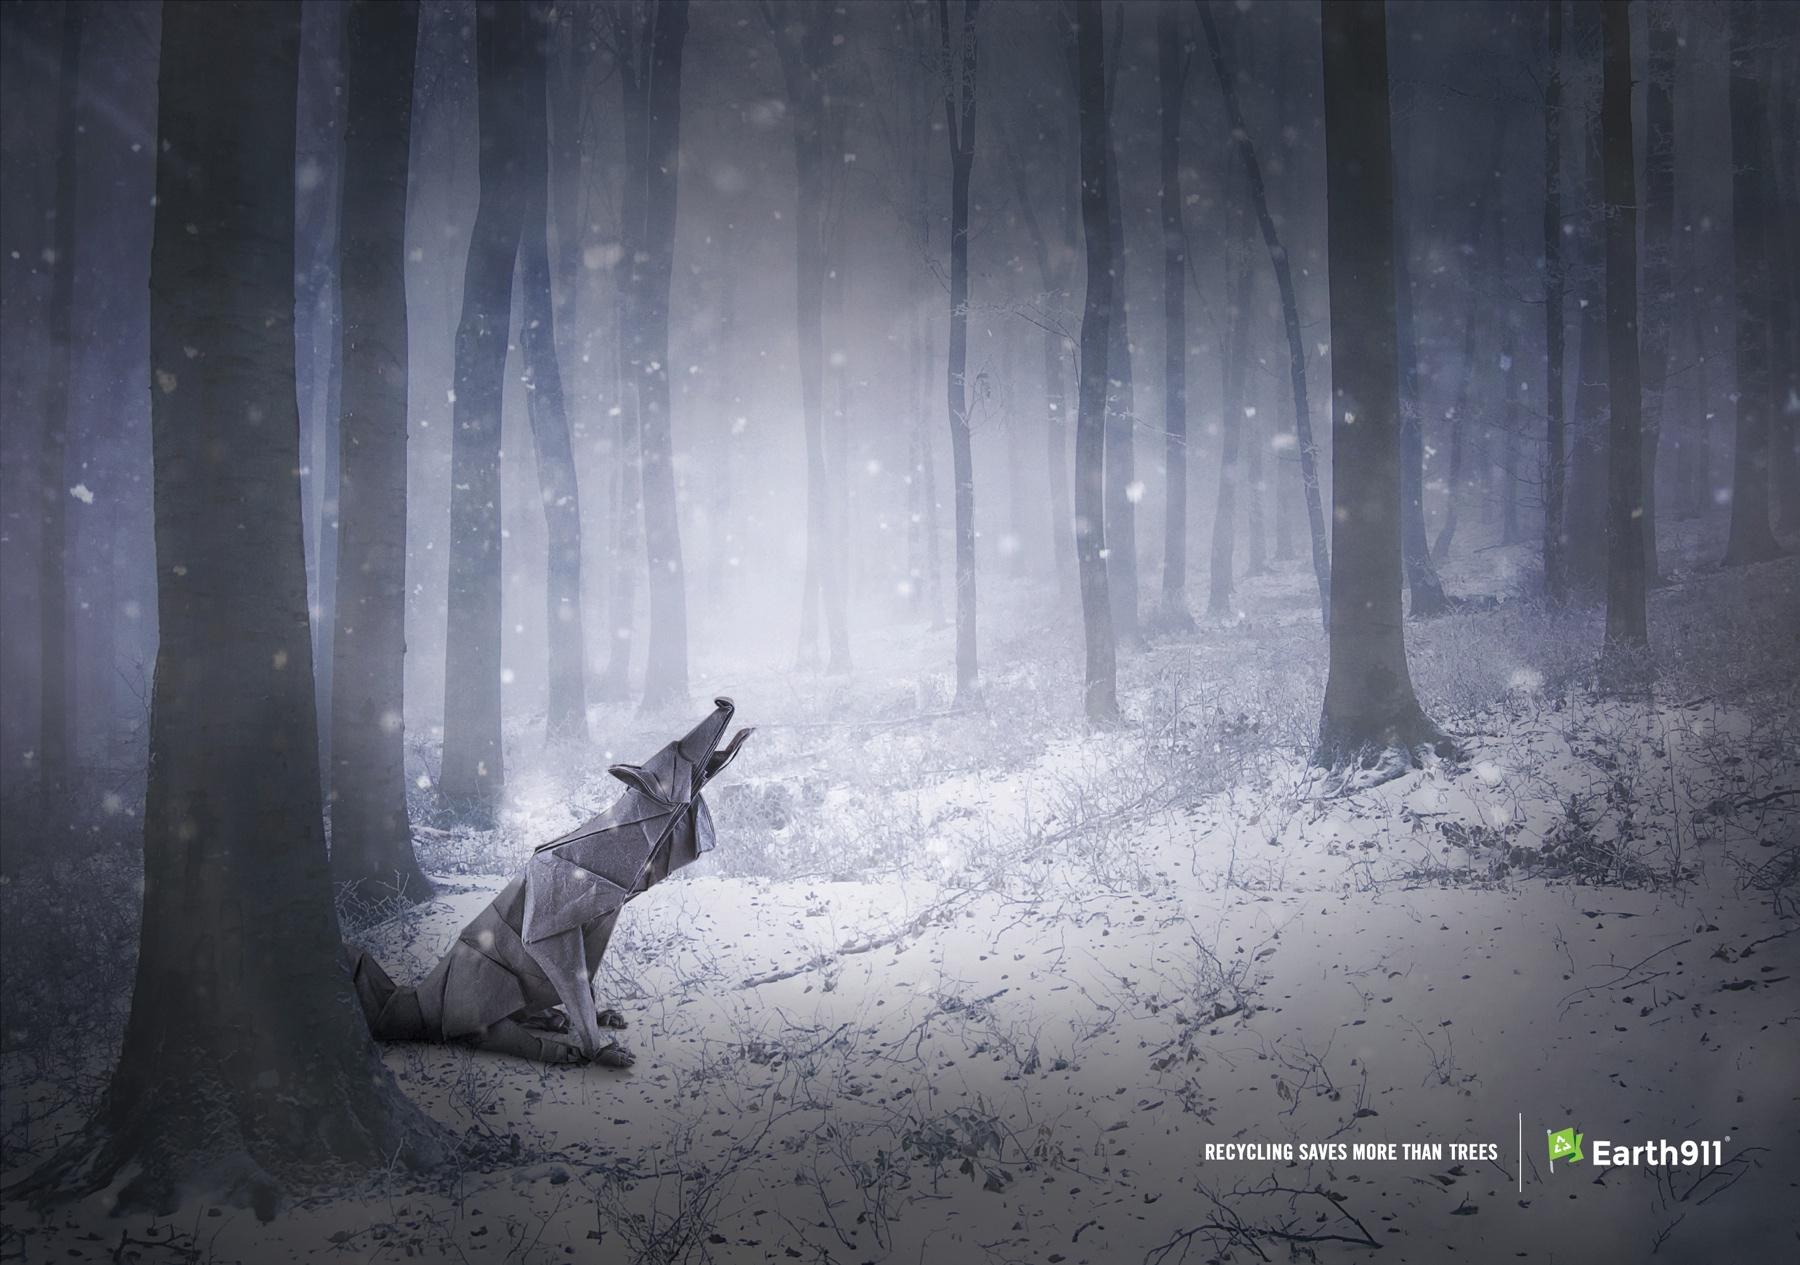 Earth 911 Print Ad -  Recycling saves more than trees, Wolf